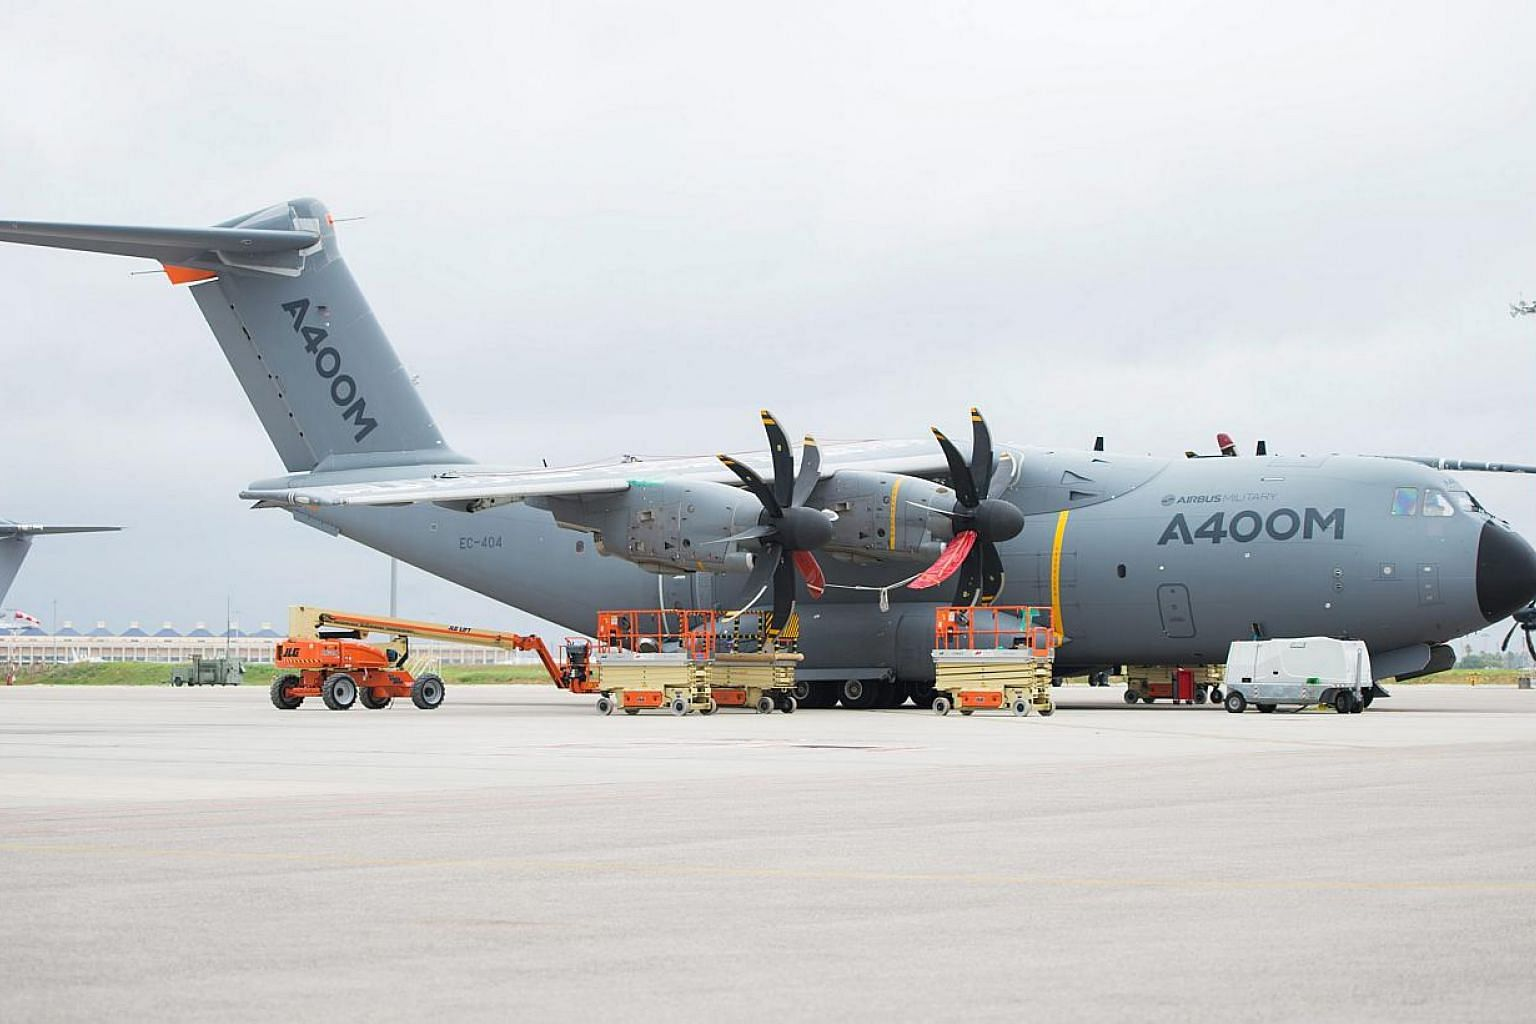 A file picture dated Nov 7, 2014, shows an Airbus A400M plane at the airport in Seville, Spain. -- PHOTO: EPA